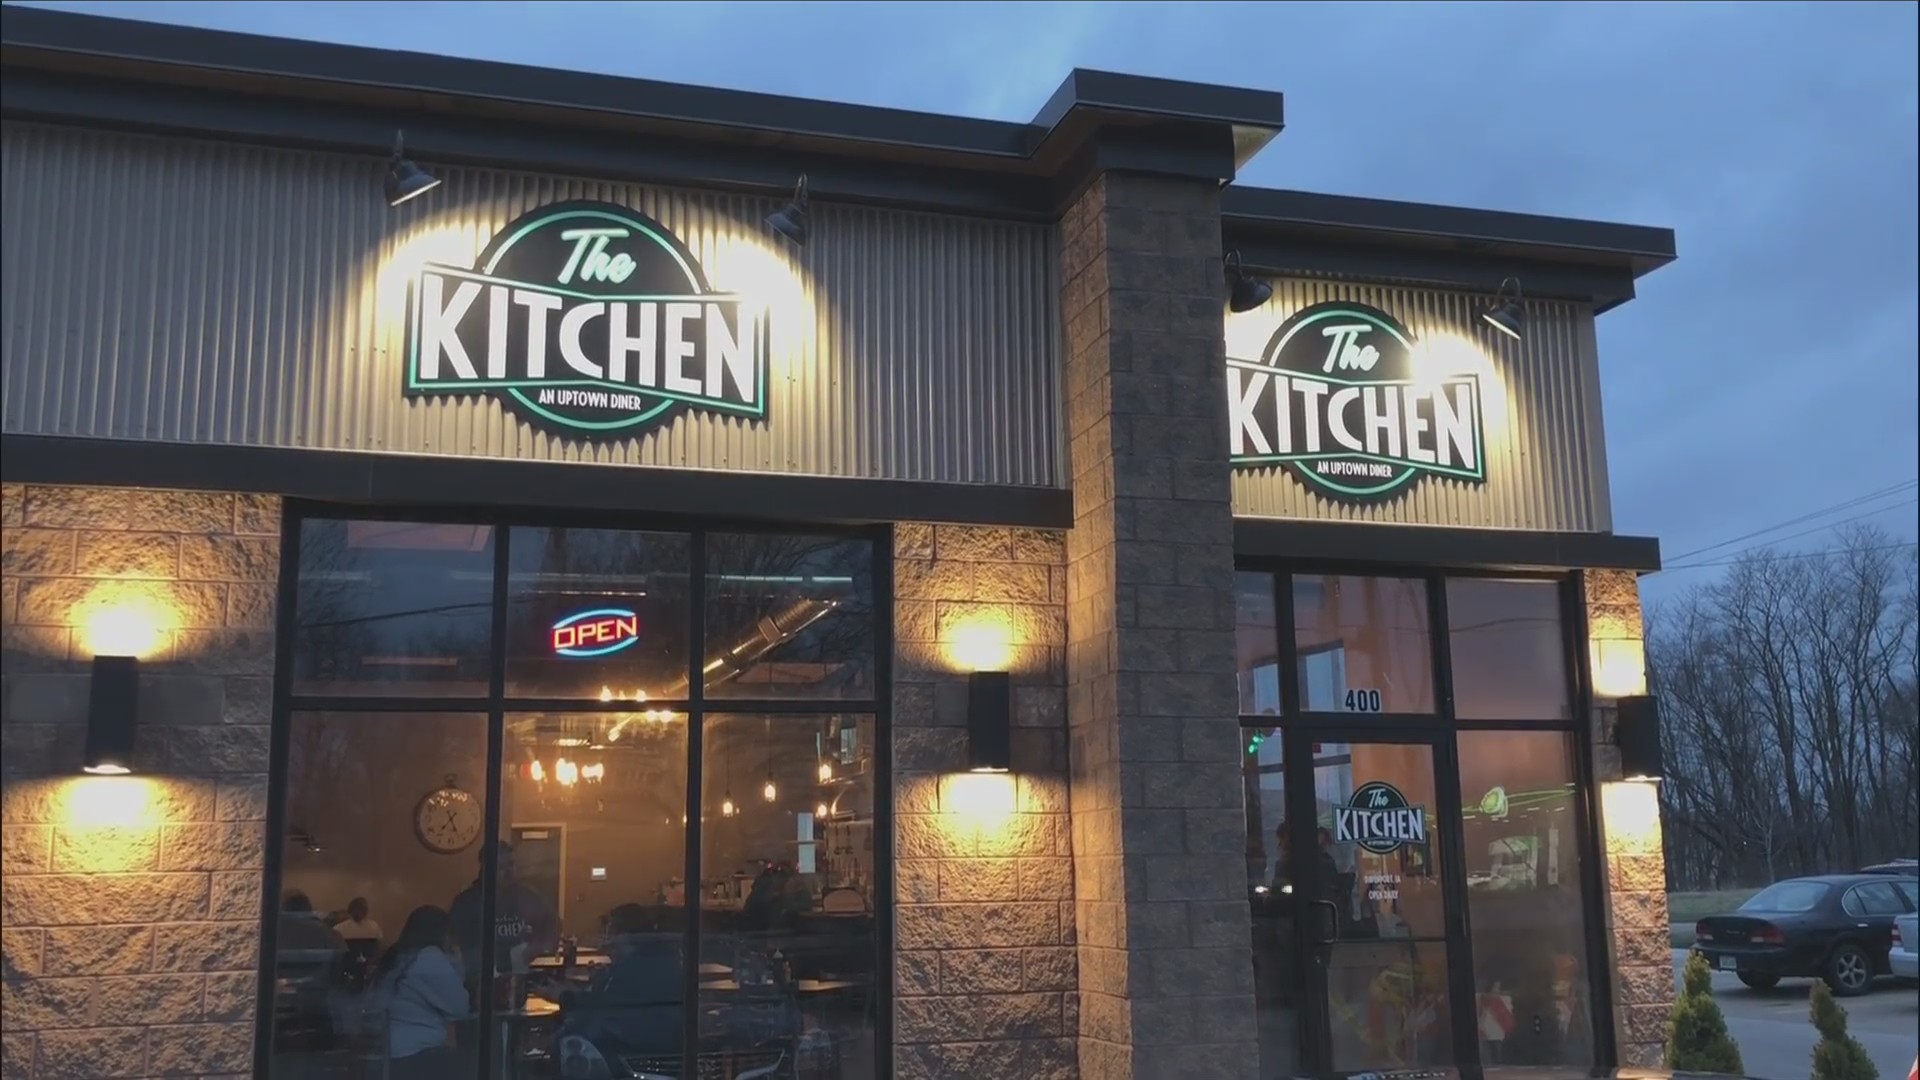 Foodie Friday: The Kitchen- An Uptown Diner